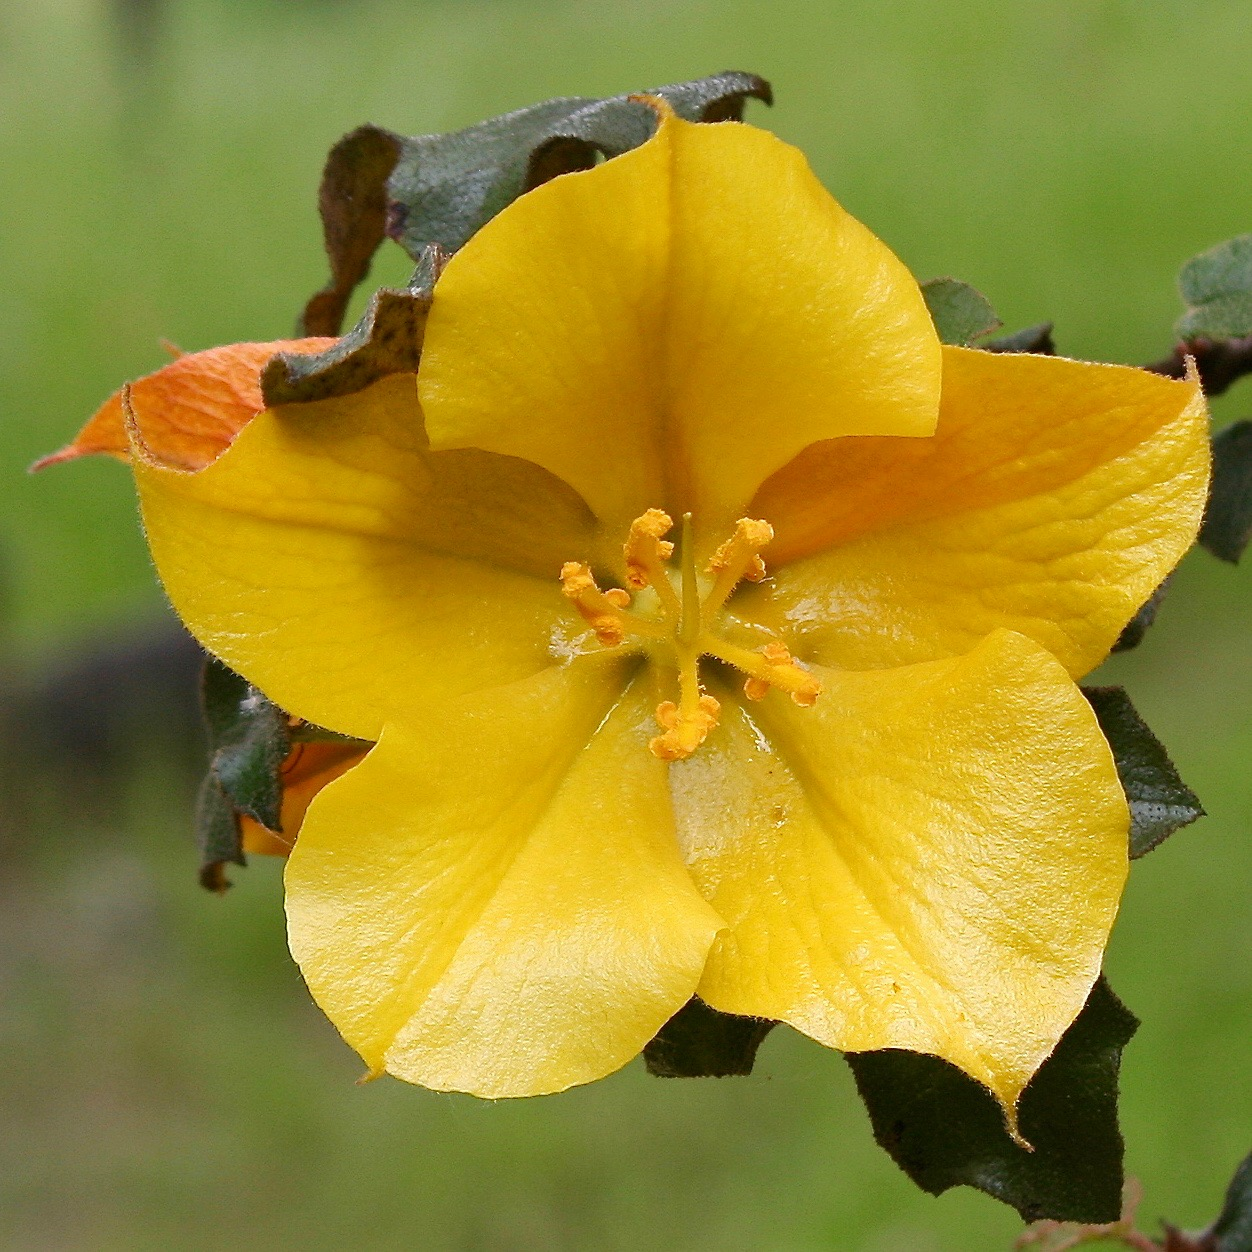 California Flannelbush (Fremontodendron californicum)